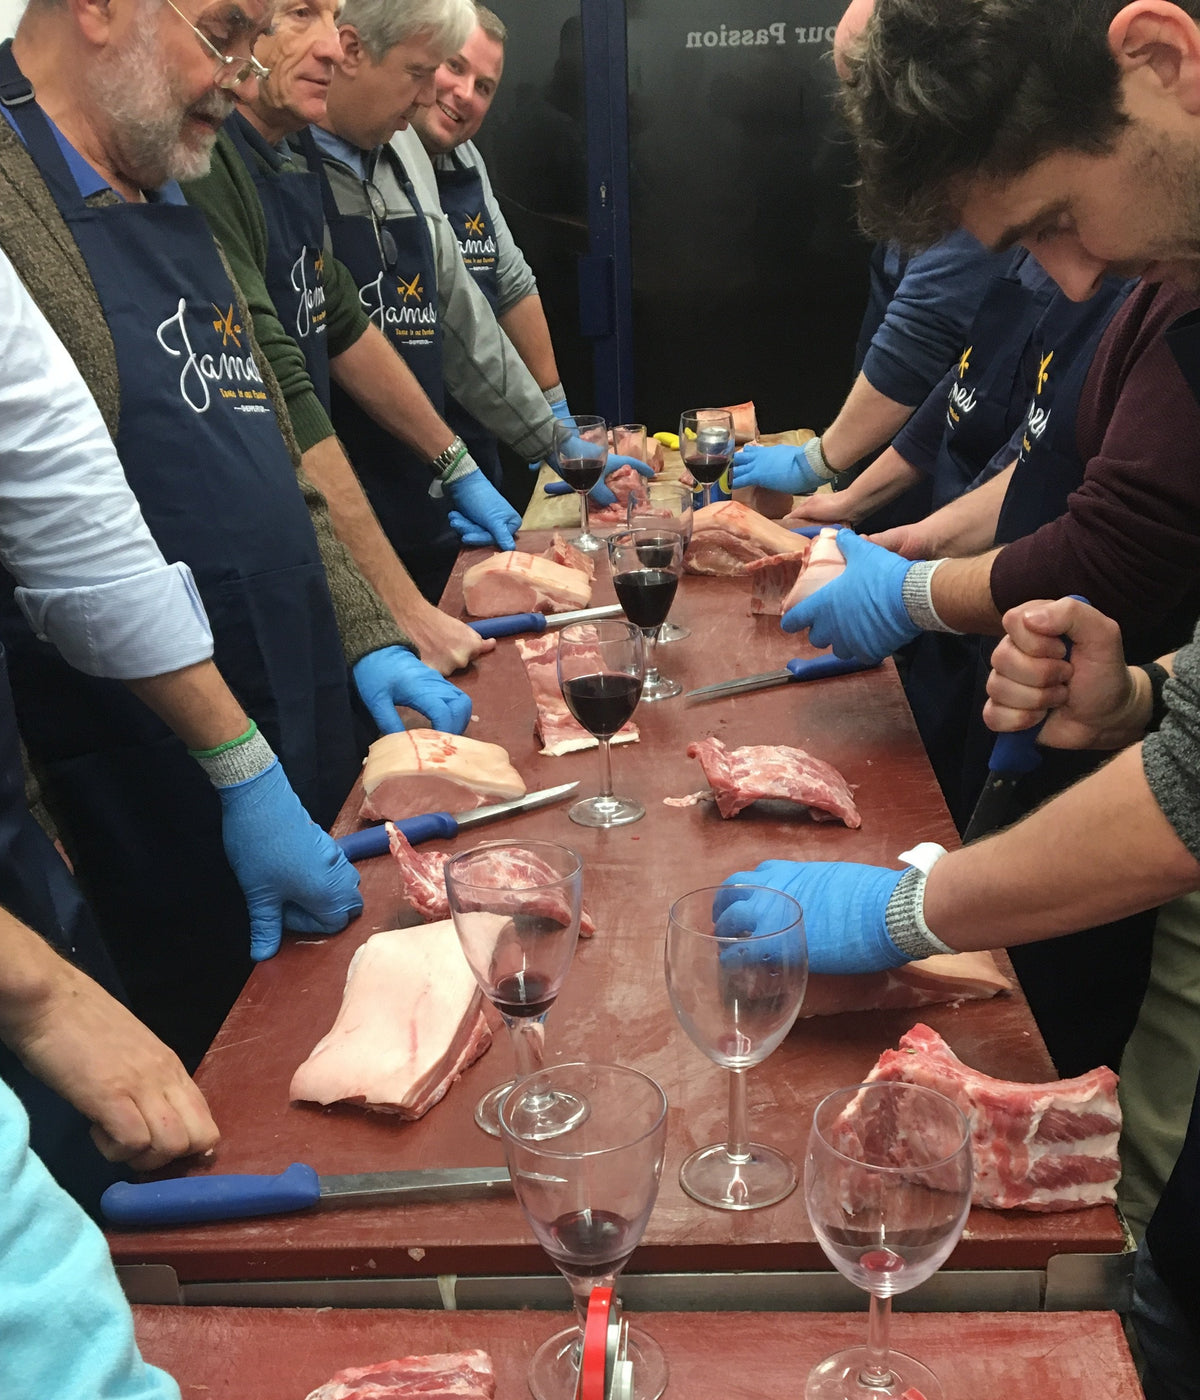 Butchery Masterclass for 10 people